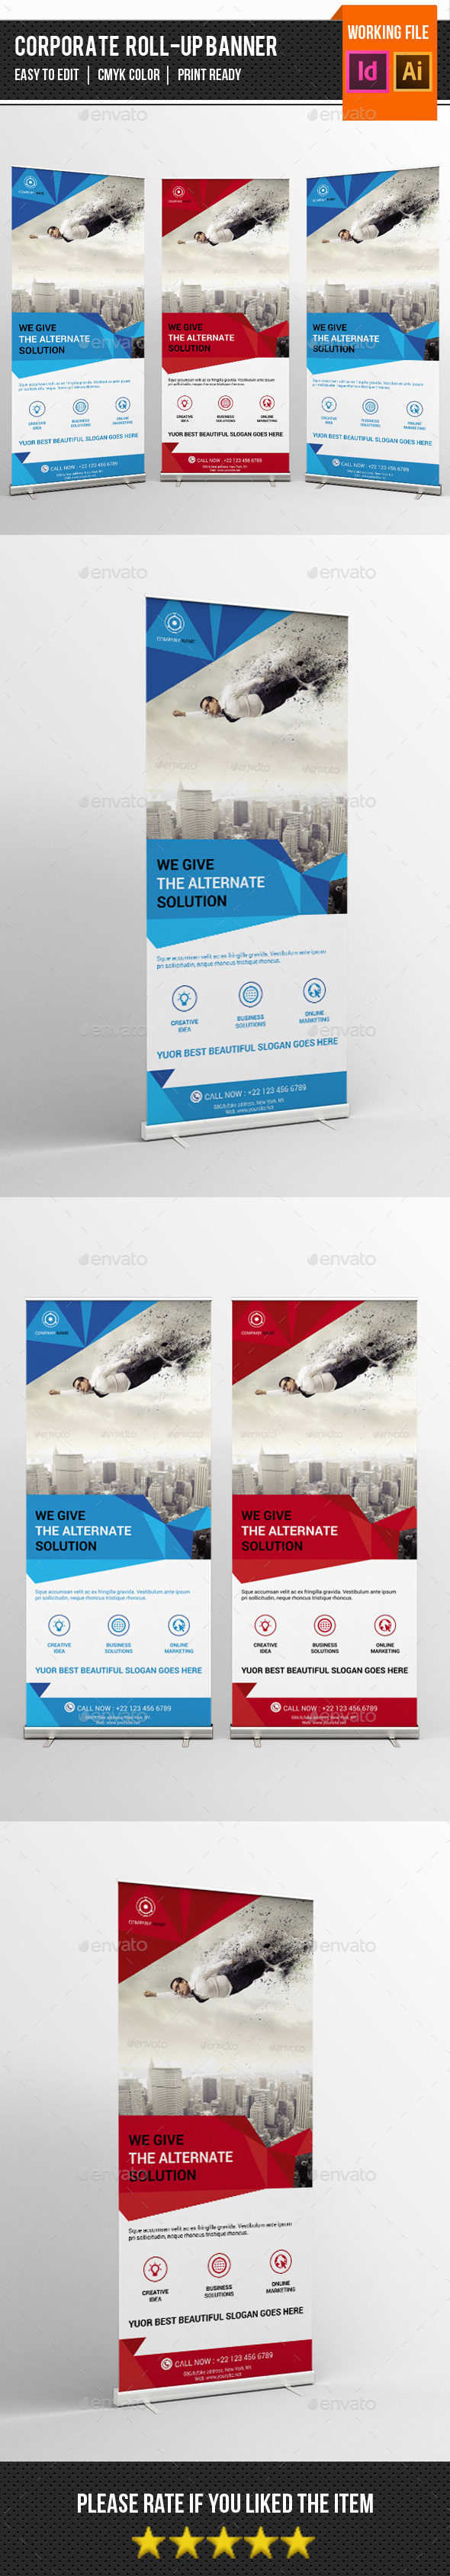 Corporate Roll-up Template-V11 - Signage Print Templates